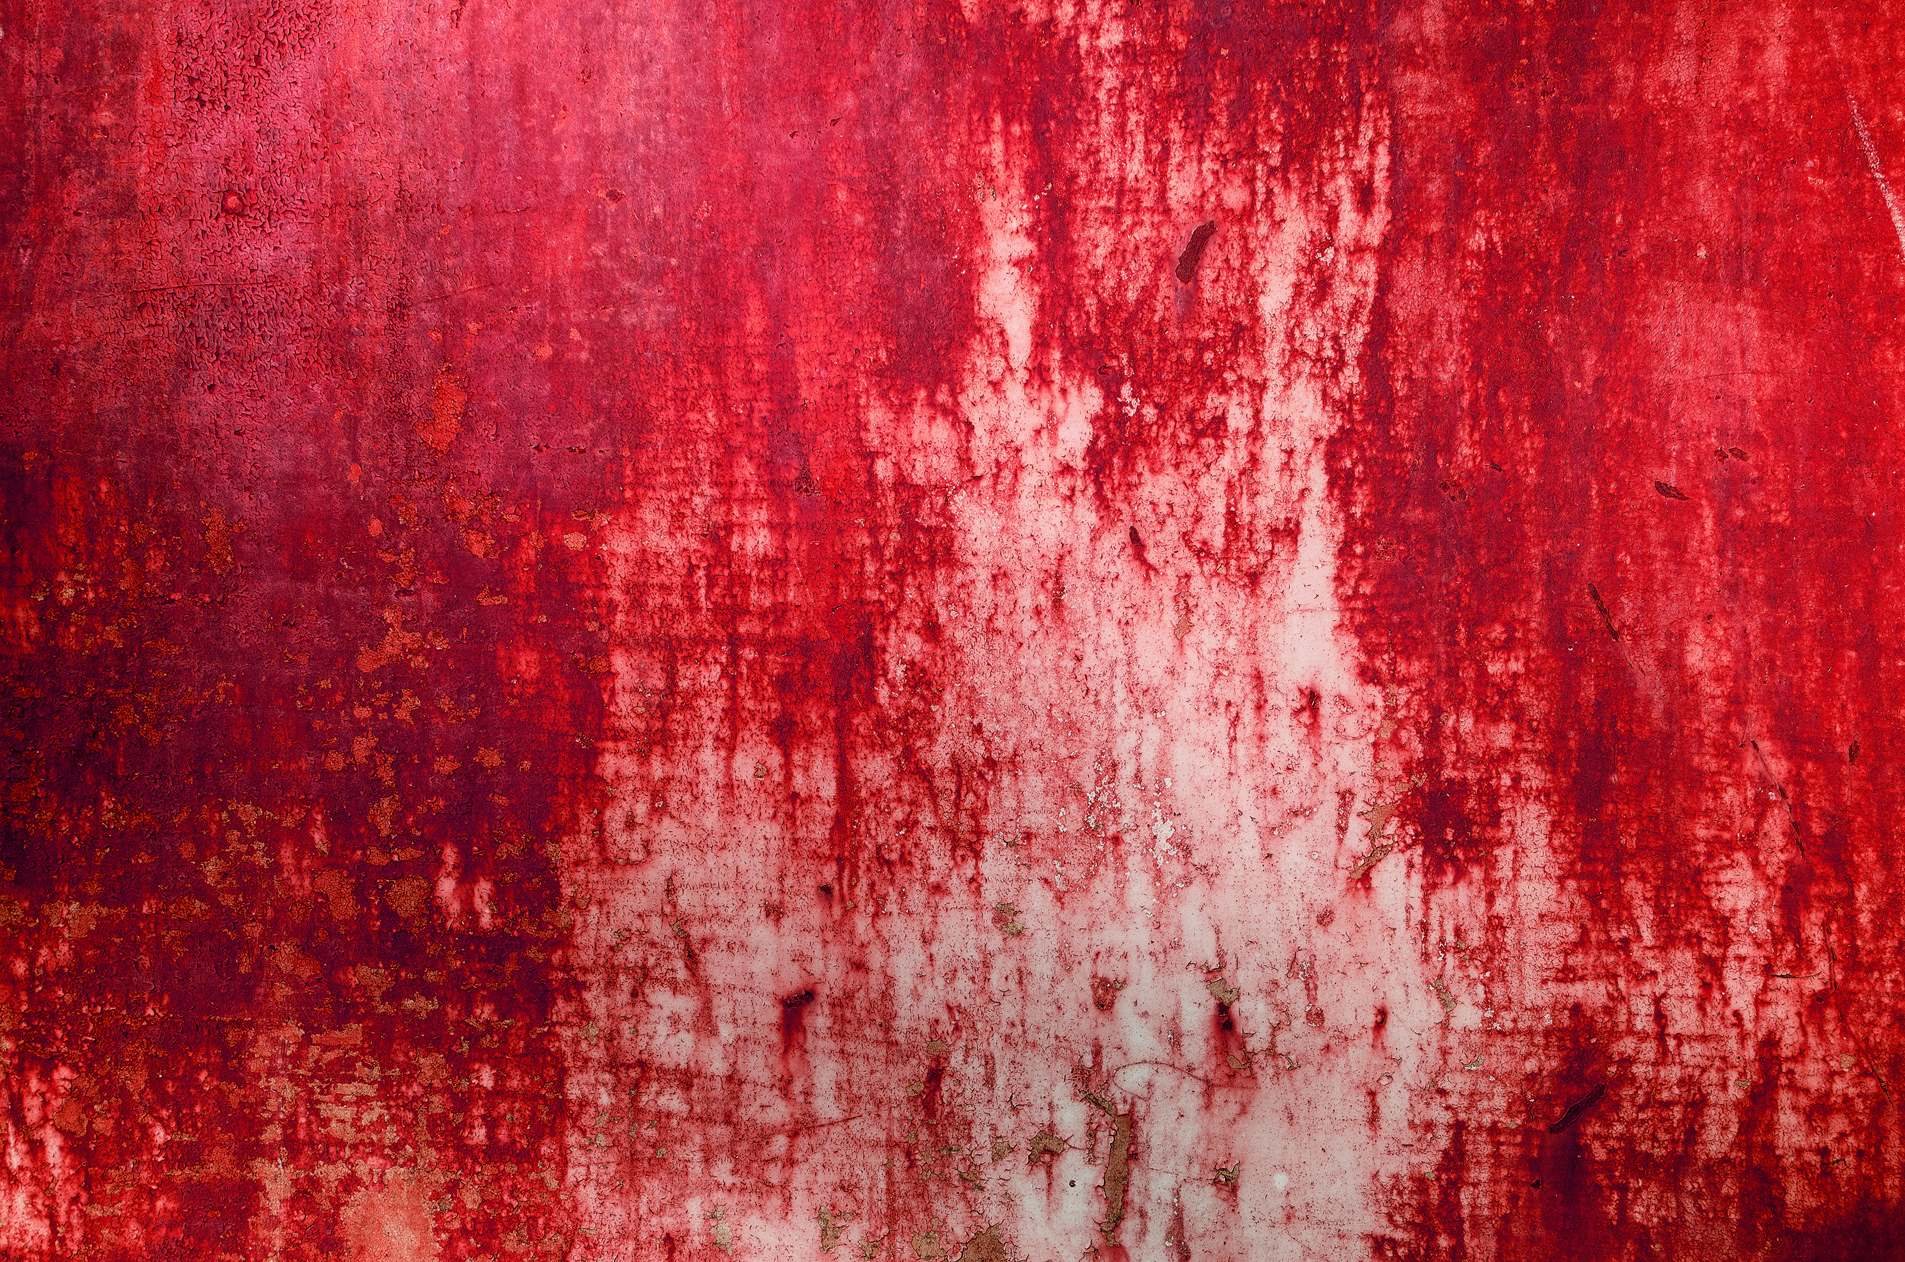 Red Living Room Ideas Red Rusty Metal Panel Texture Photohdx